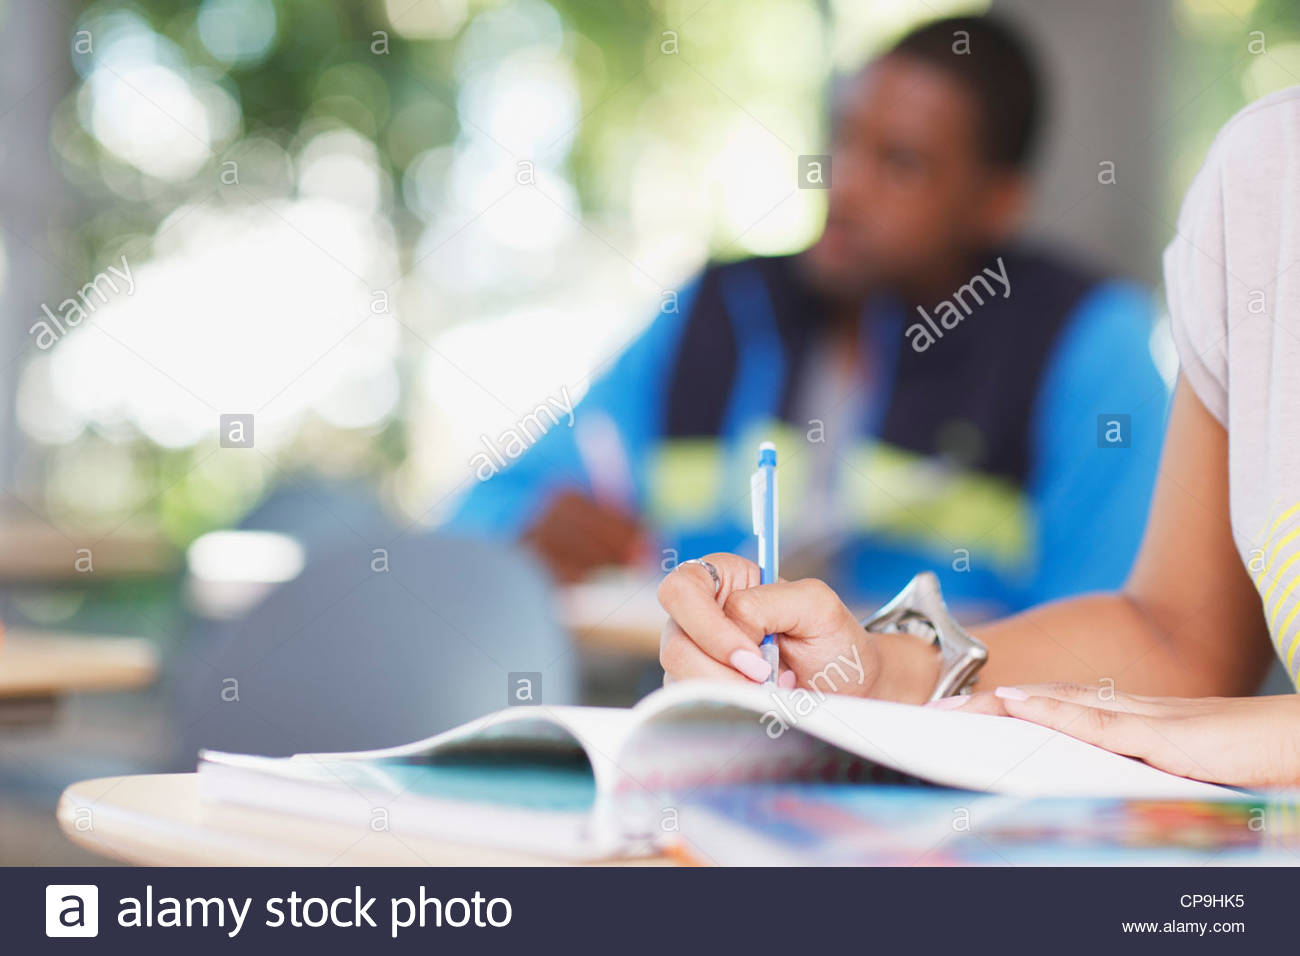 18-19 years,25-29 years,casual clothing,classmate,classroom,college,color image,copy space,day,education,focus on - Stock Image